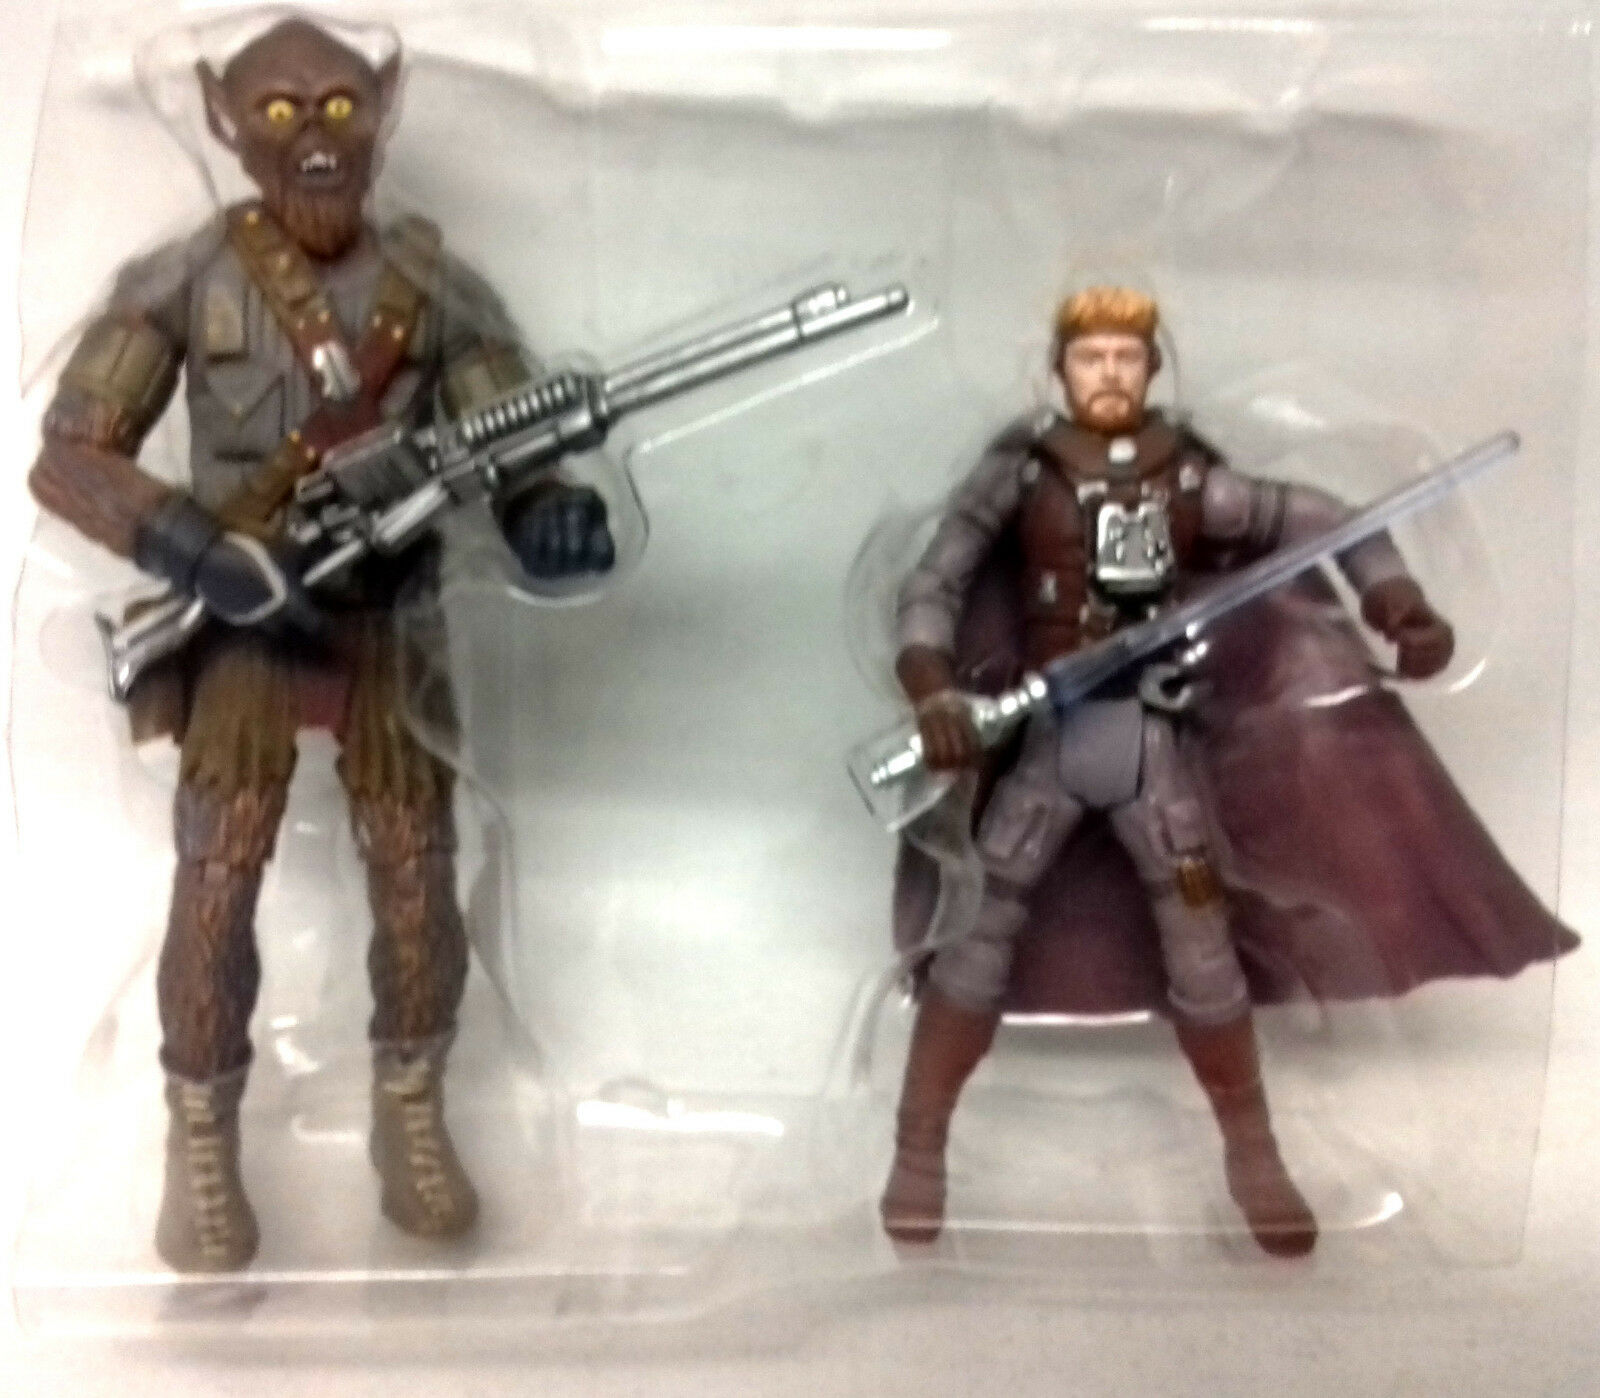 STAR WARS MCQUARRIE CONCEPT HAN SOLO & CHEWBACCA CHEWBACCA CHEWBACCA 4  action figures NO BOX b72adf